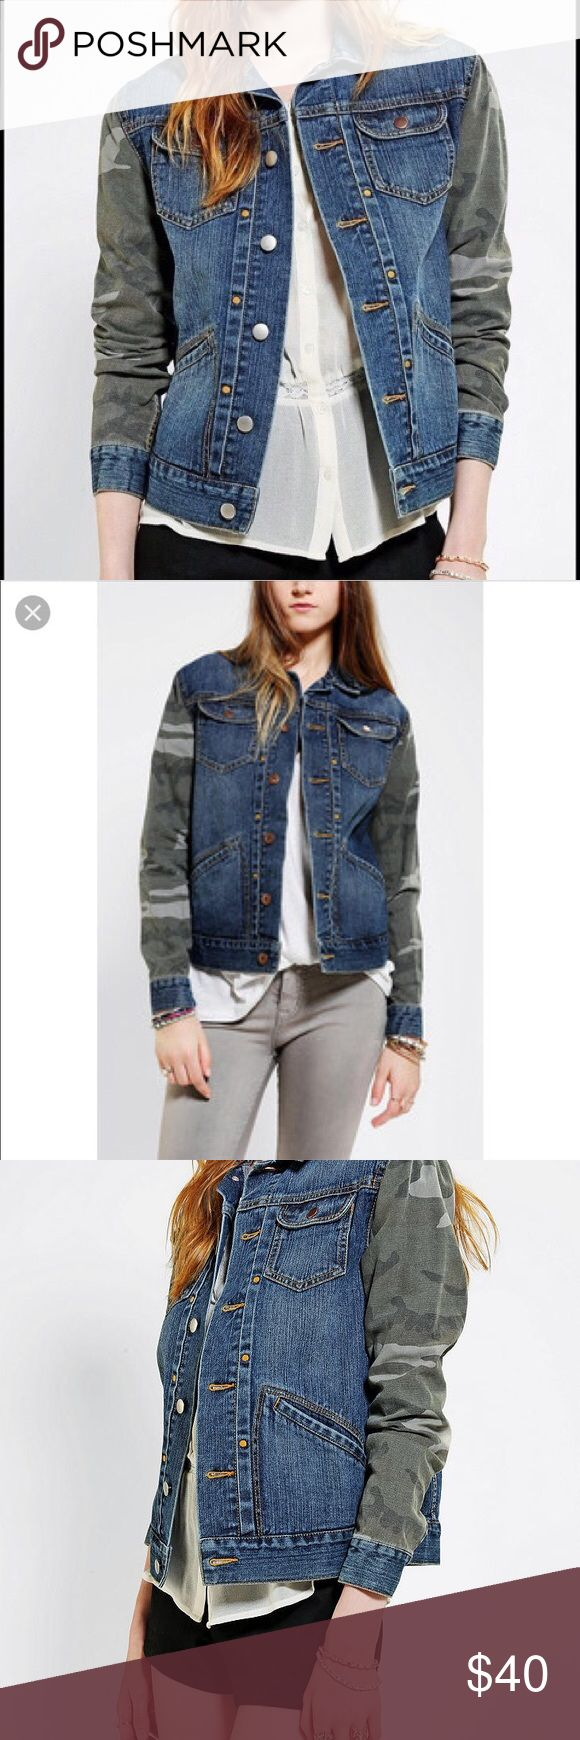 "Urban Outfitters BDG Denim camouflage jacket Excellent condition no flaws like new Urban Outfitters jean jacket. Easy casual style goes with everything! 19"" across from armpit to armpit and 23"" long from shoulder to hem Urban Outfitters Jackets & Coats Jean Jackets"